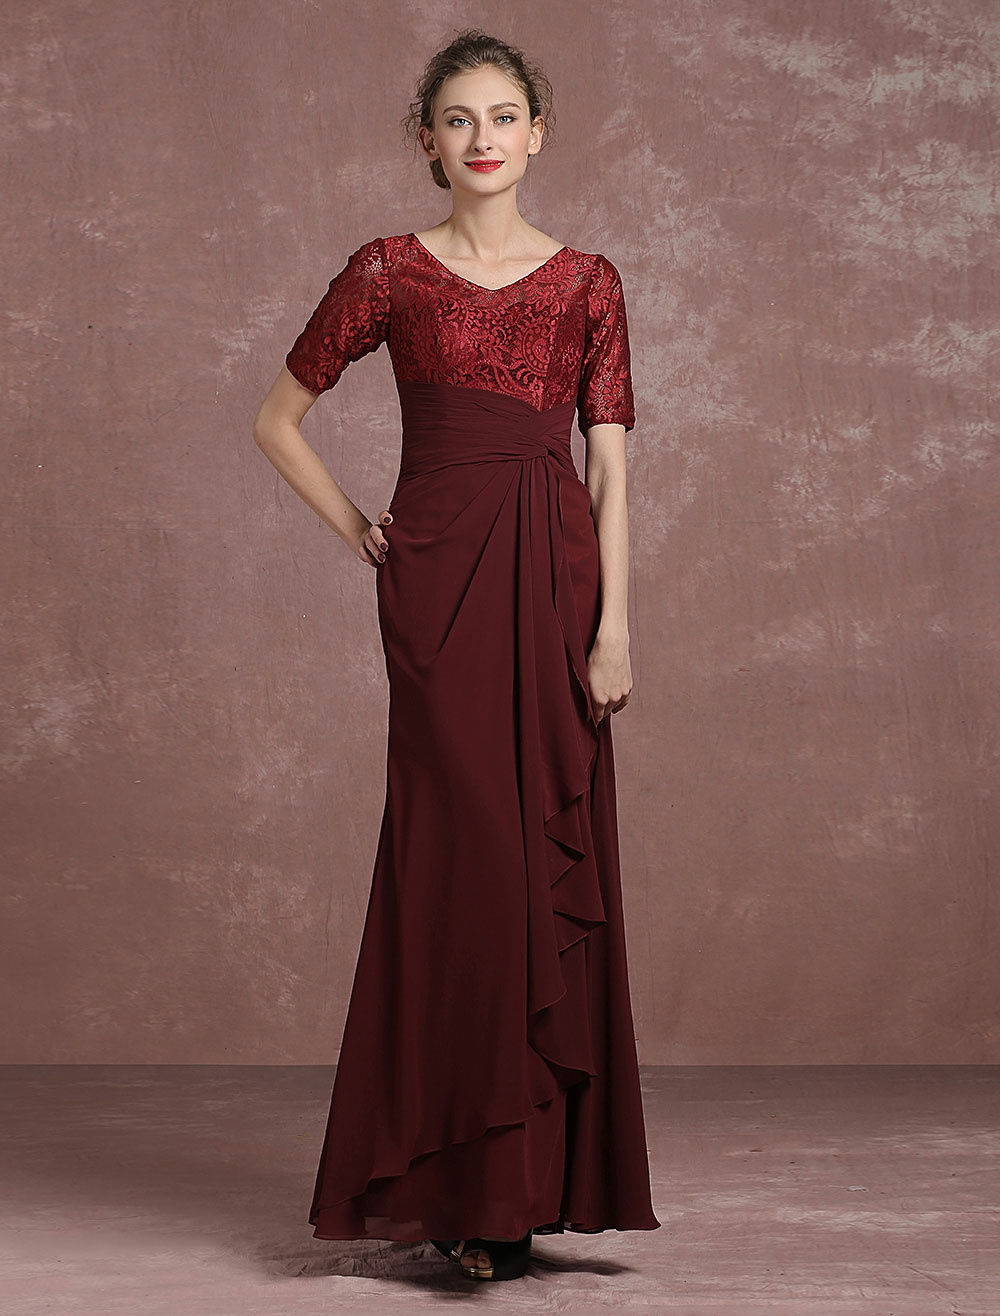 Buy Burgundy Evening Dress Lace Pleated Mother's Dress V Neck Half Sleeve Floor Length Mermaid Party Dress Milanoo for $134.99 in Milanoo store